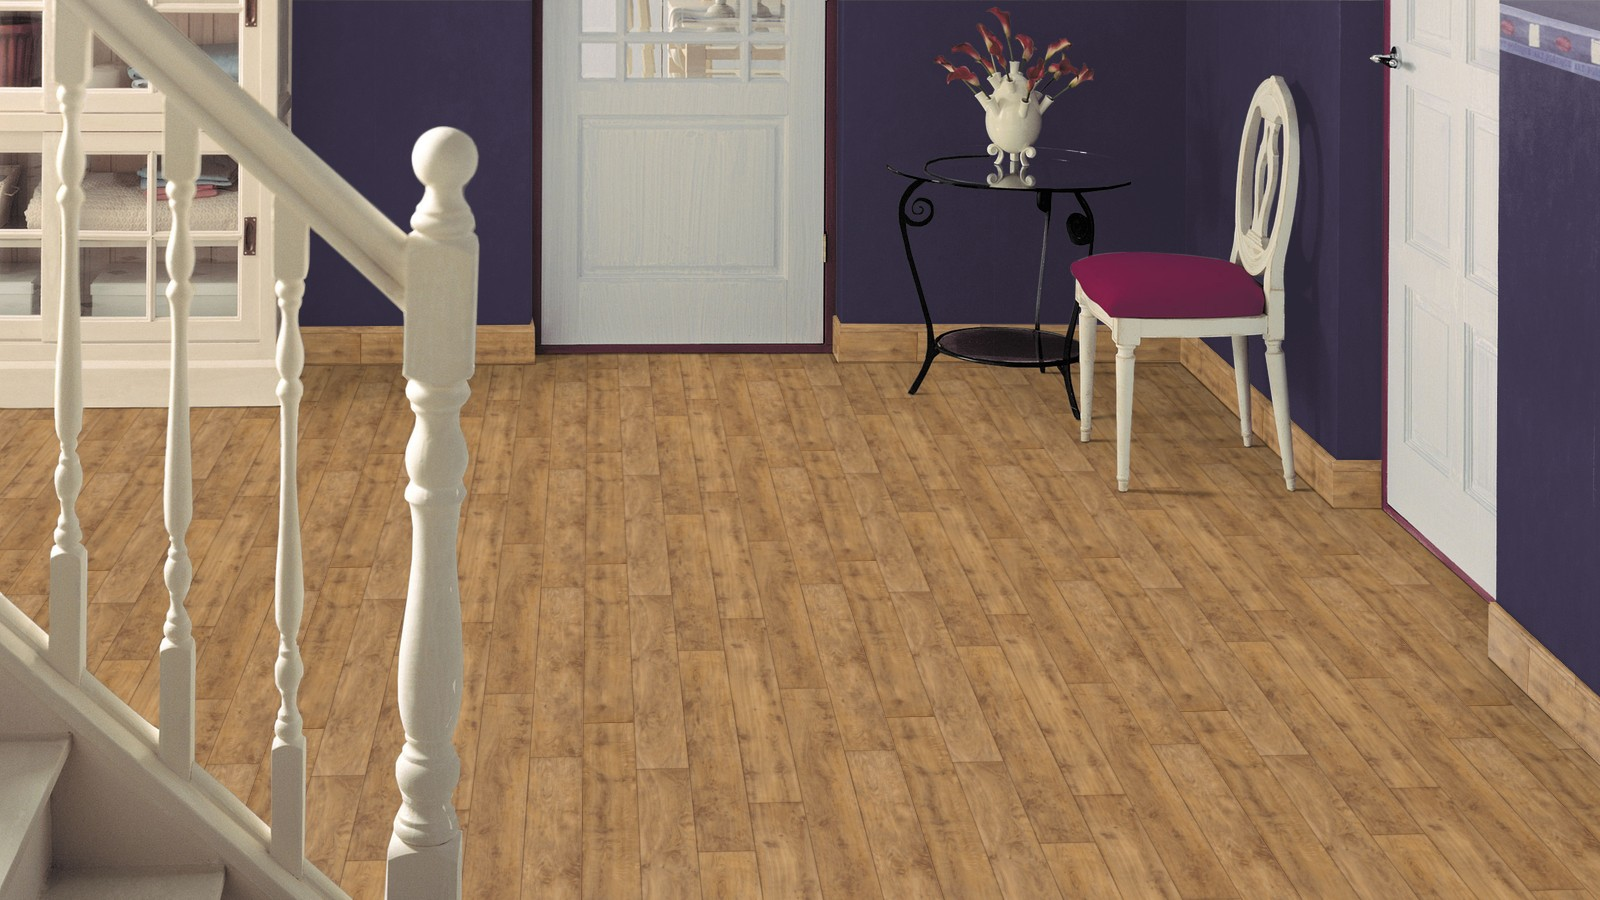 Distressed Oak Wood Hd Quality Flotex Buy Online Or